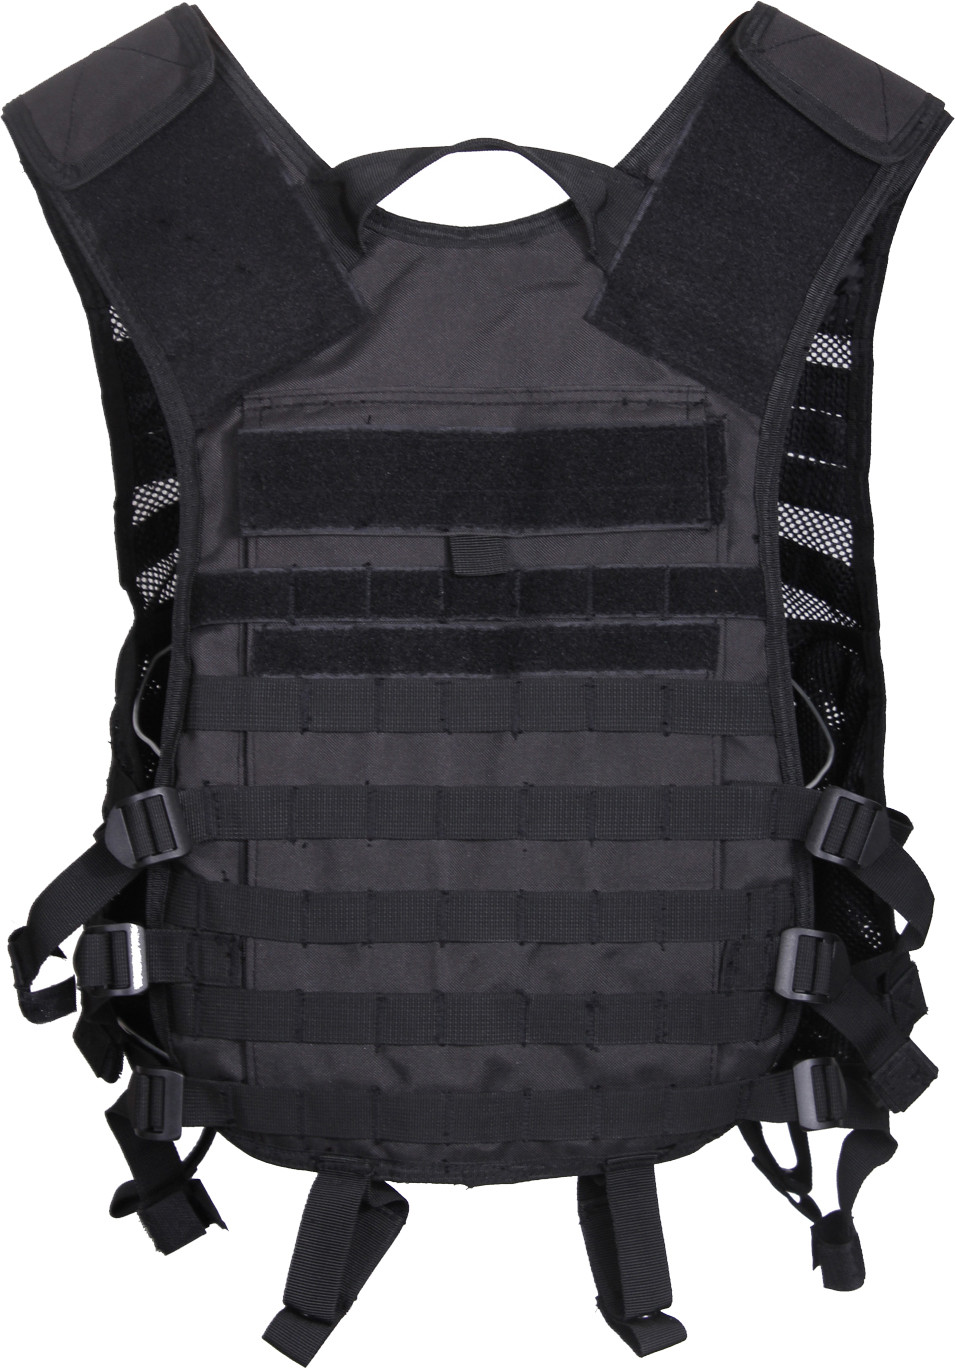 More Views. Black Military MOLLE Adjustable Lightweight Mesh Tactical  Utility Vest ... 39c5ba4572a